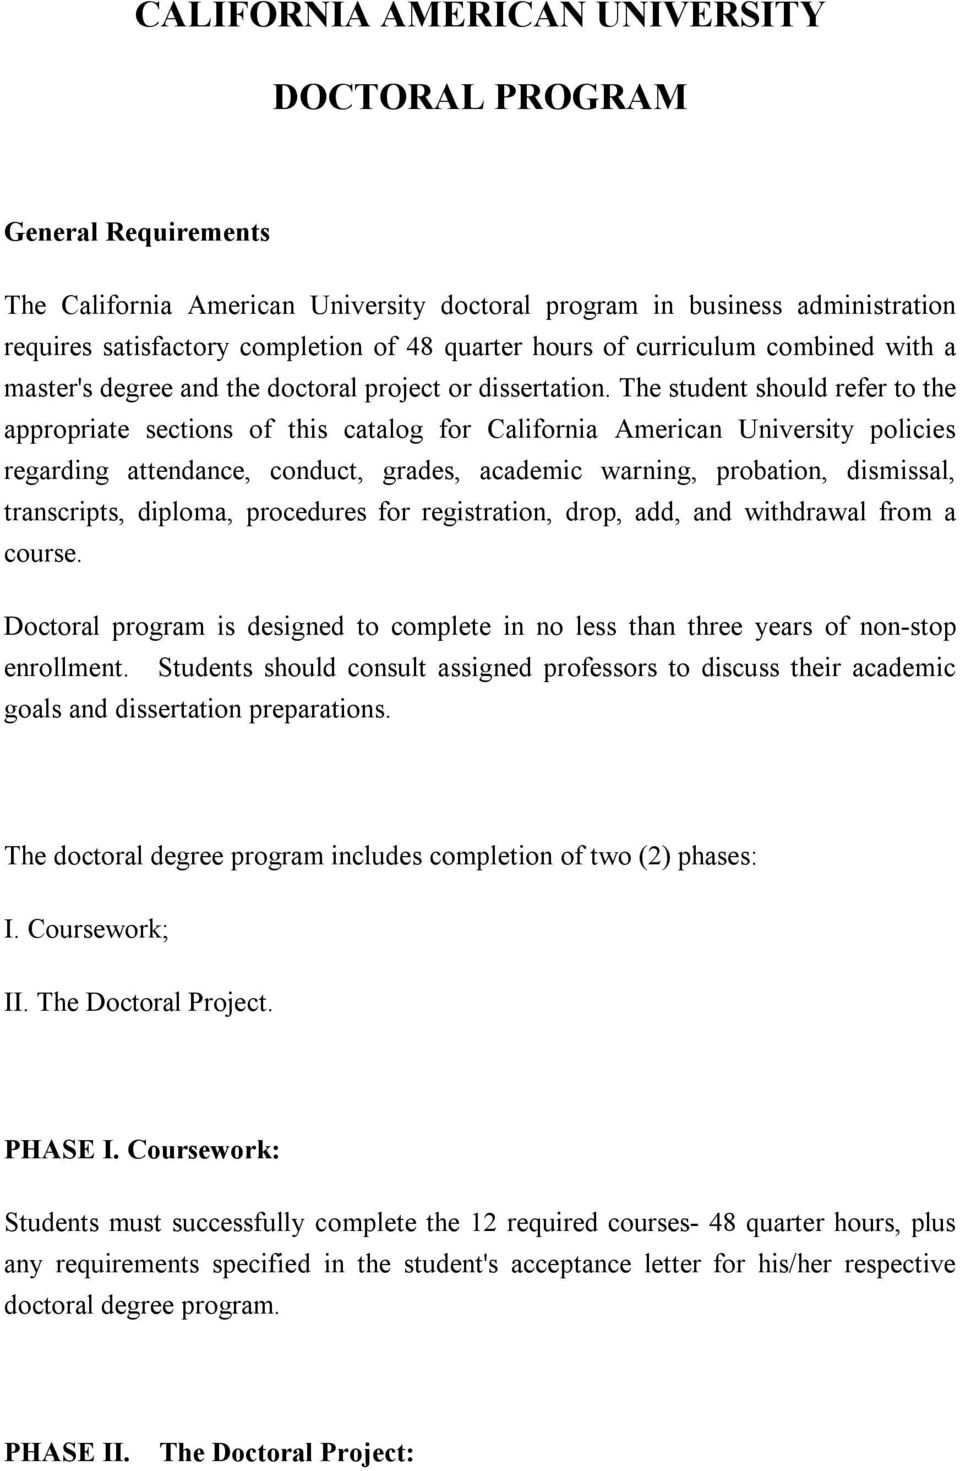 The student should refer to the appropriate sections of this catalog for California American University policies regarding attendance, conduct, grades, academic warning, probation, dismissal,